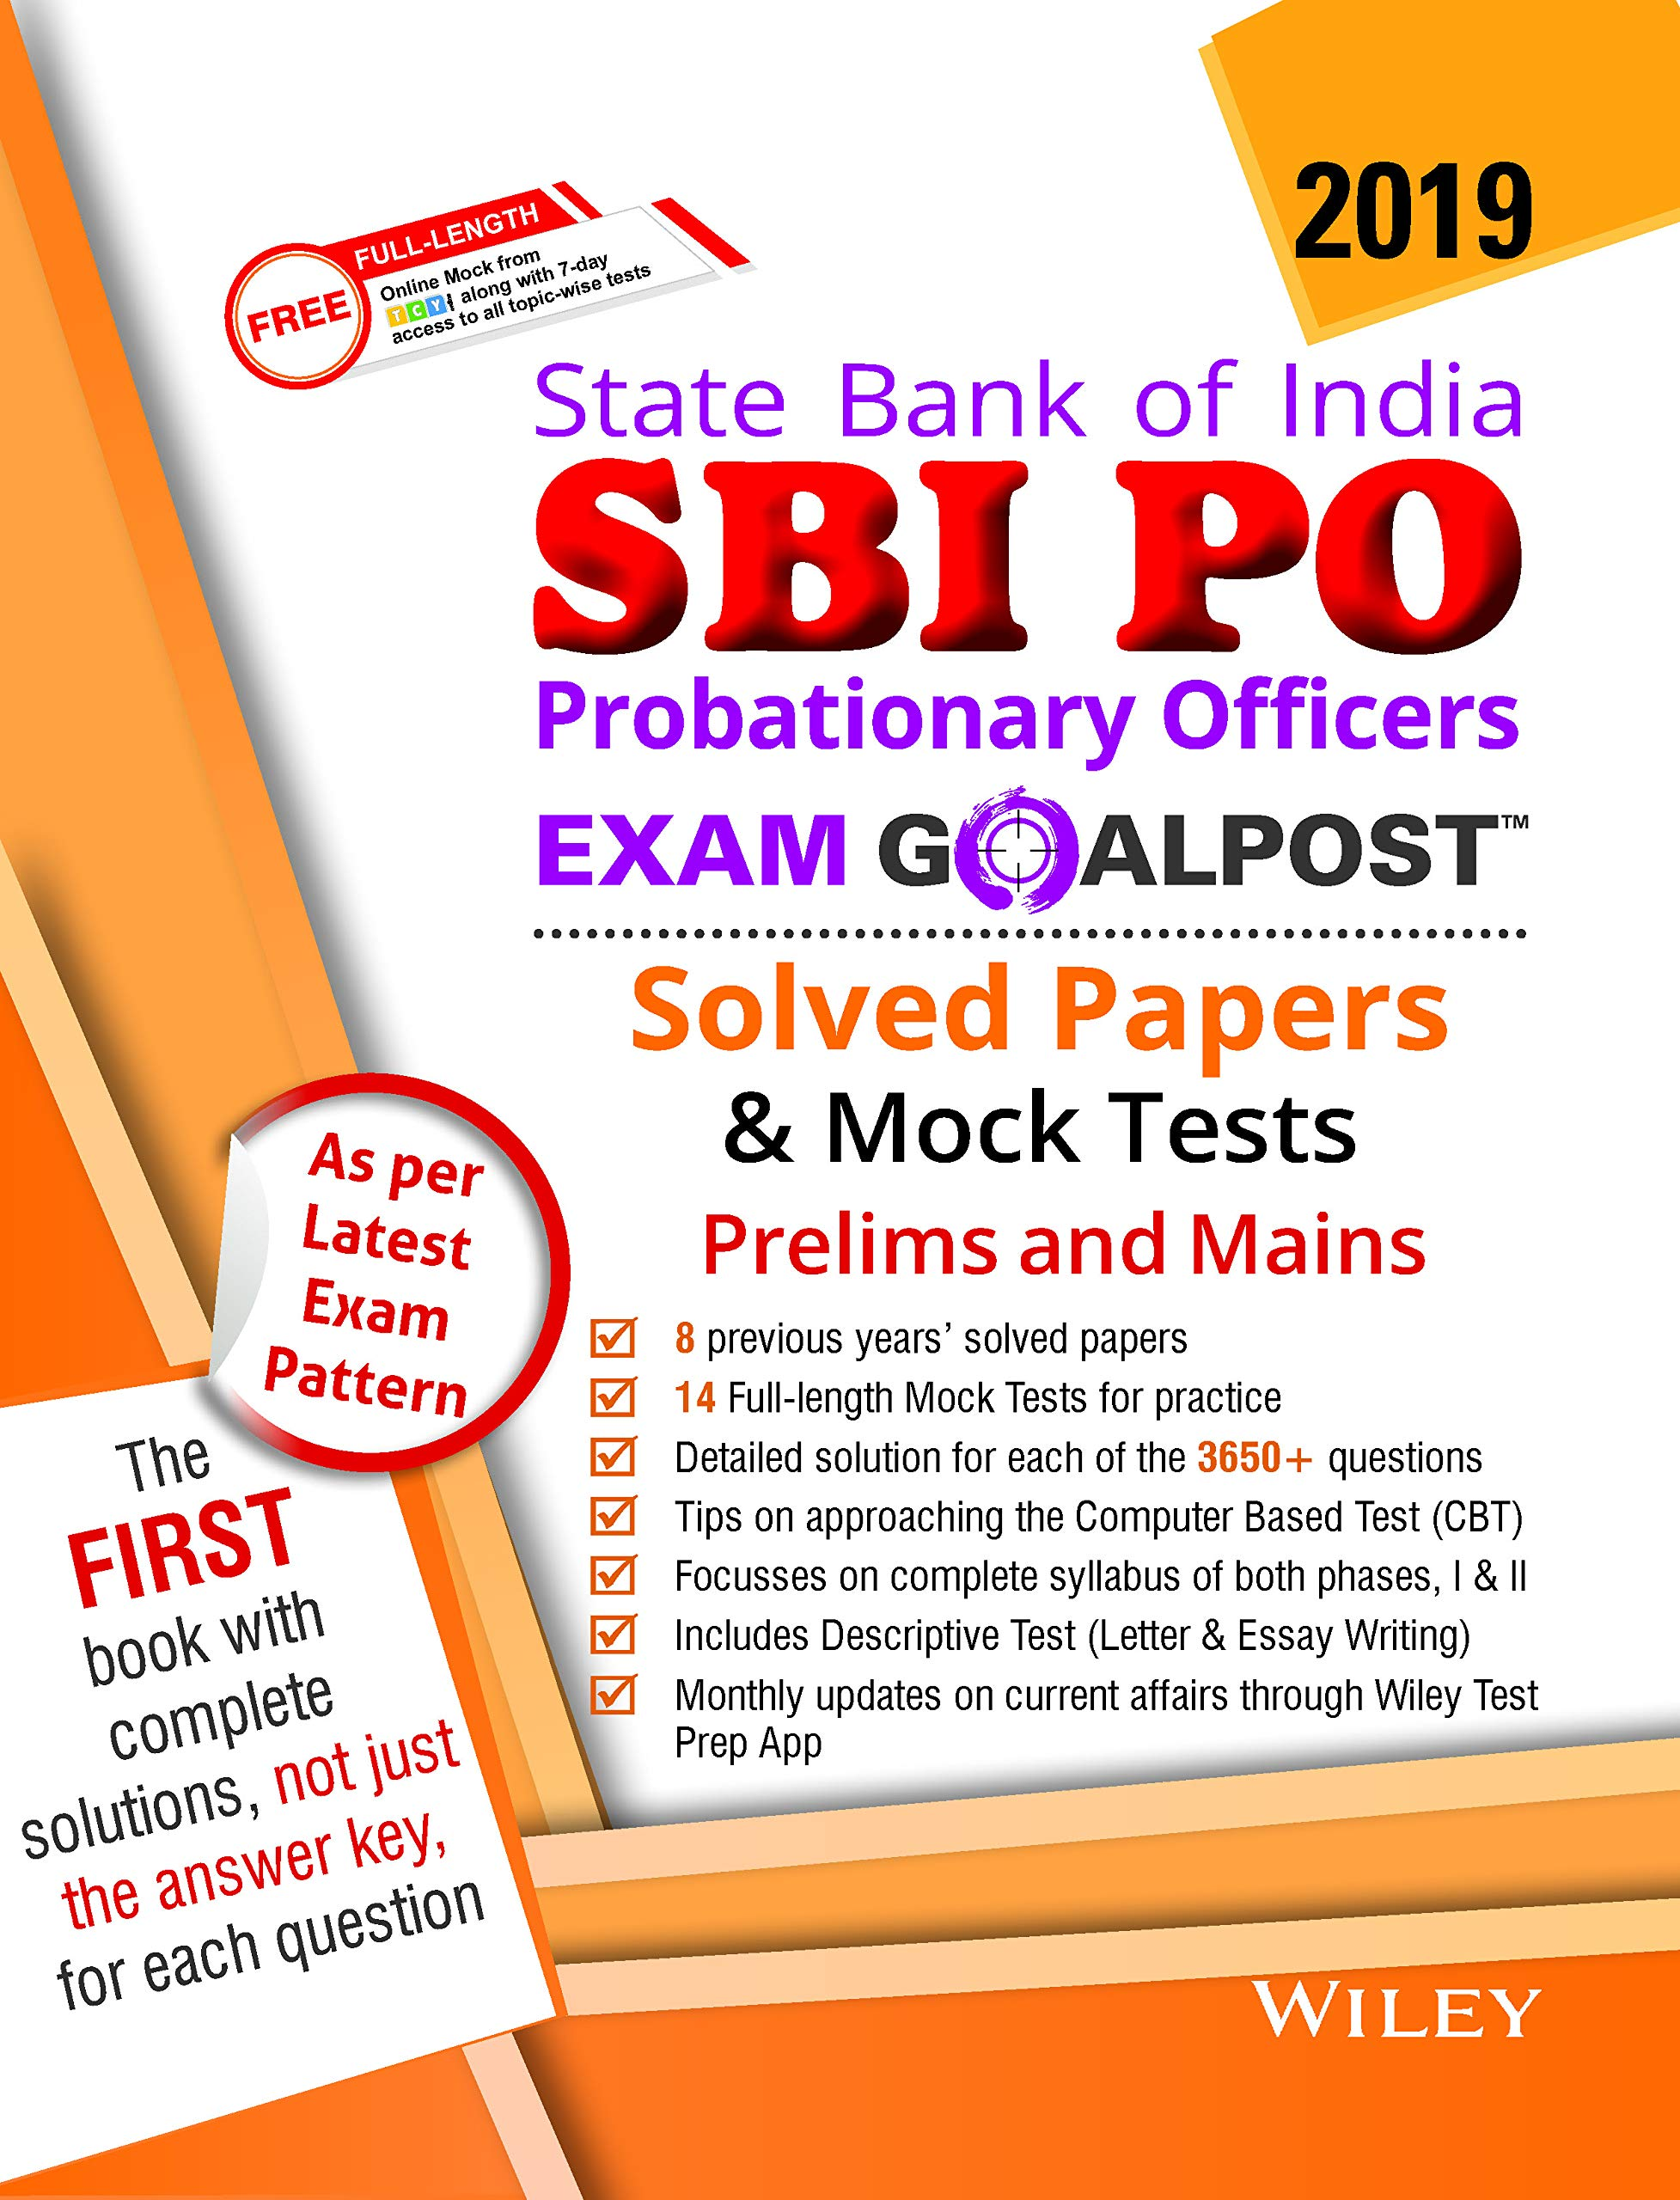 Buy Wiley's State Bank of India Probationary Officers (SBI